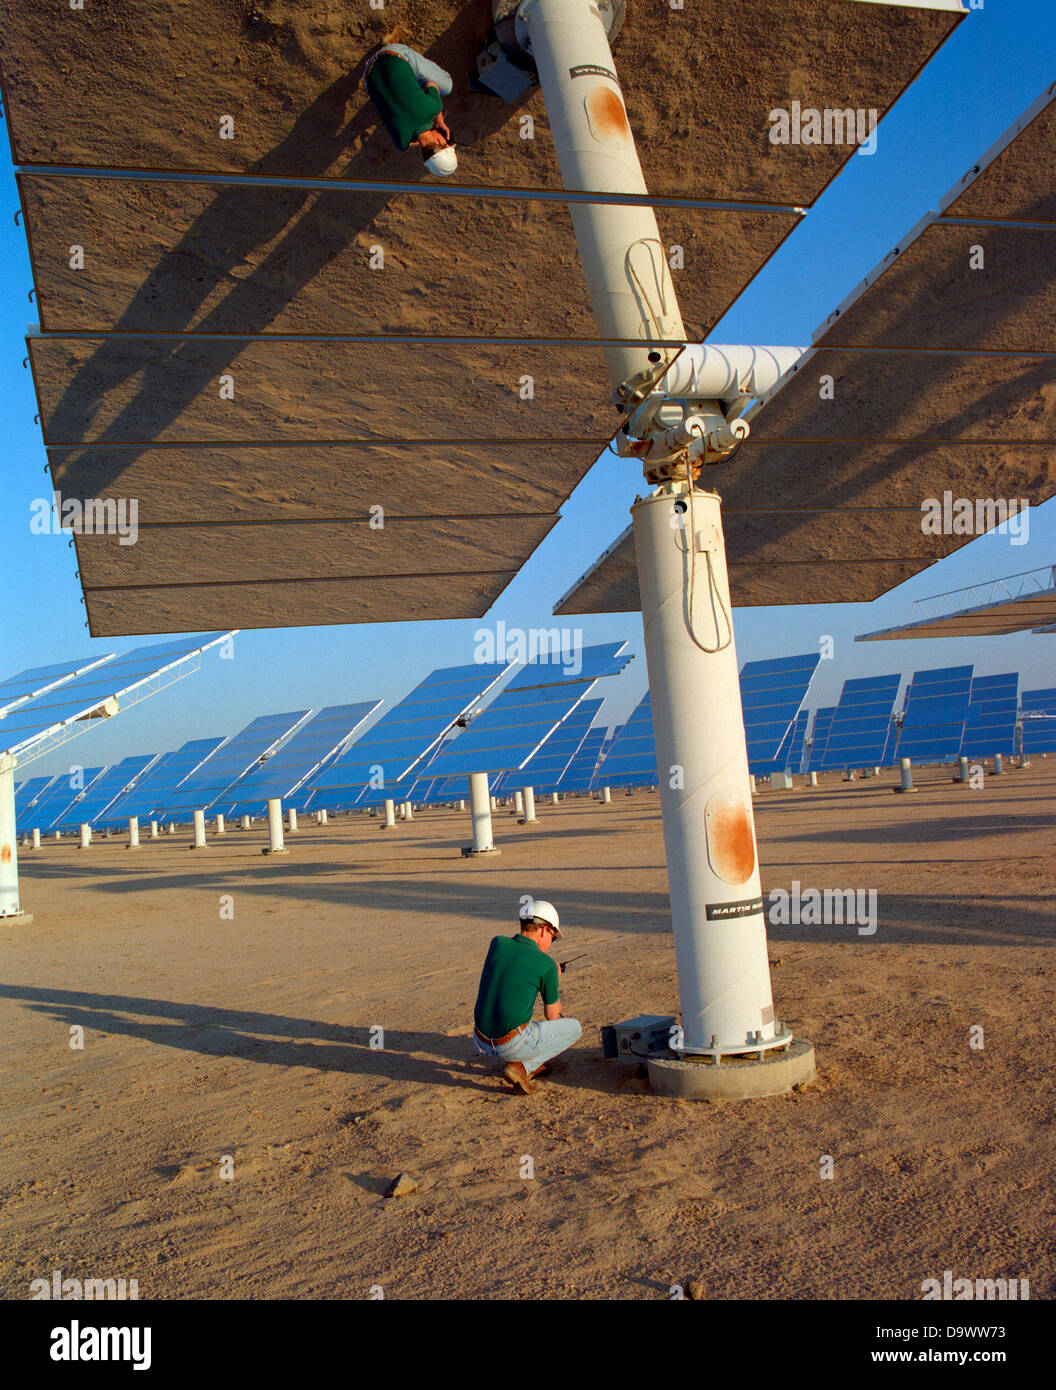 A technician checks the alignment of sun tracking mirrors at the Solar Two experimental energy project in the Mojave - Stock Image